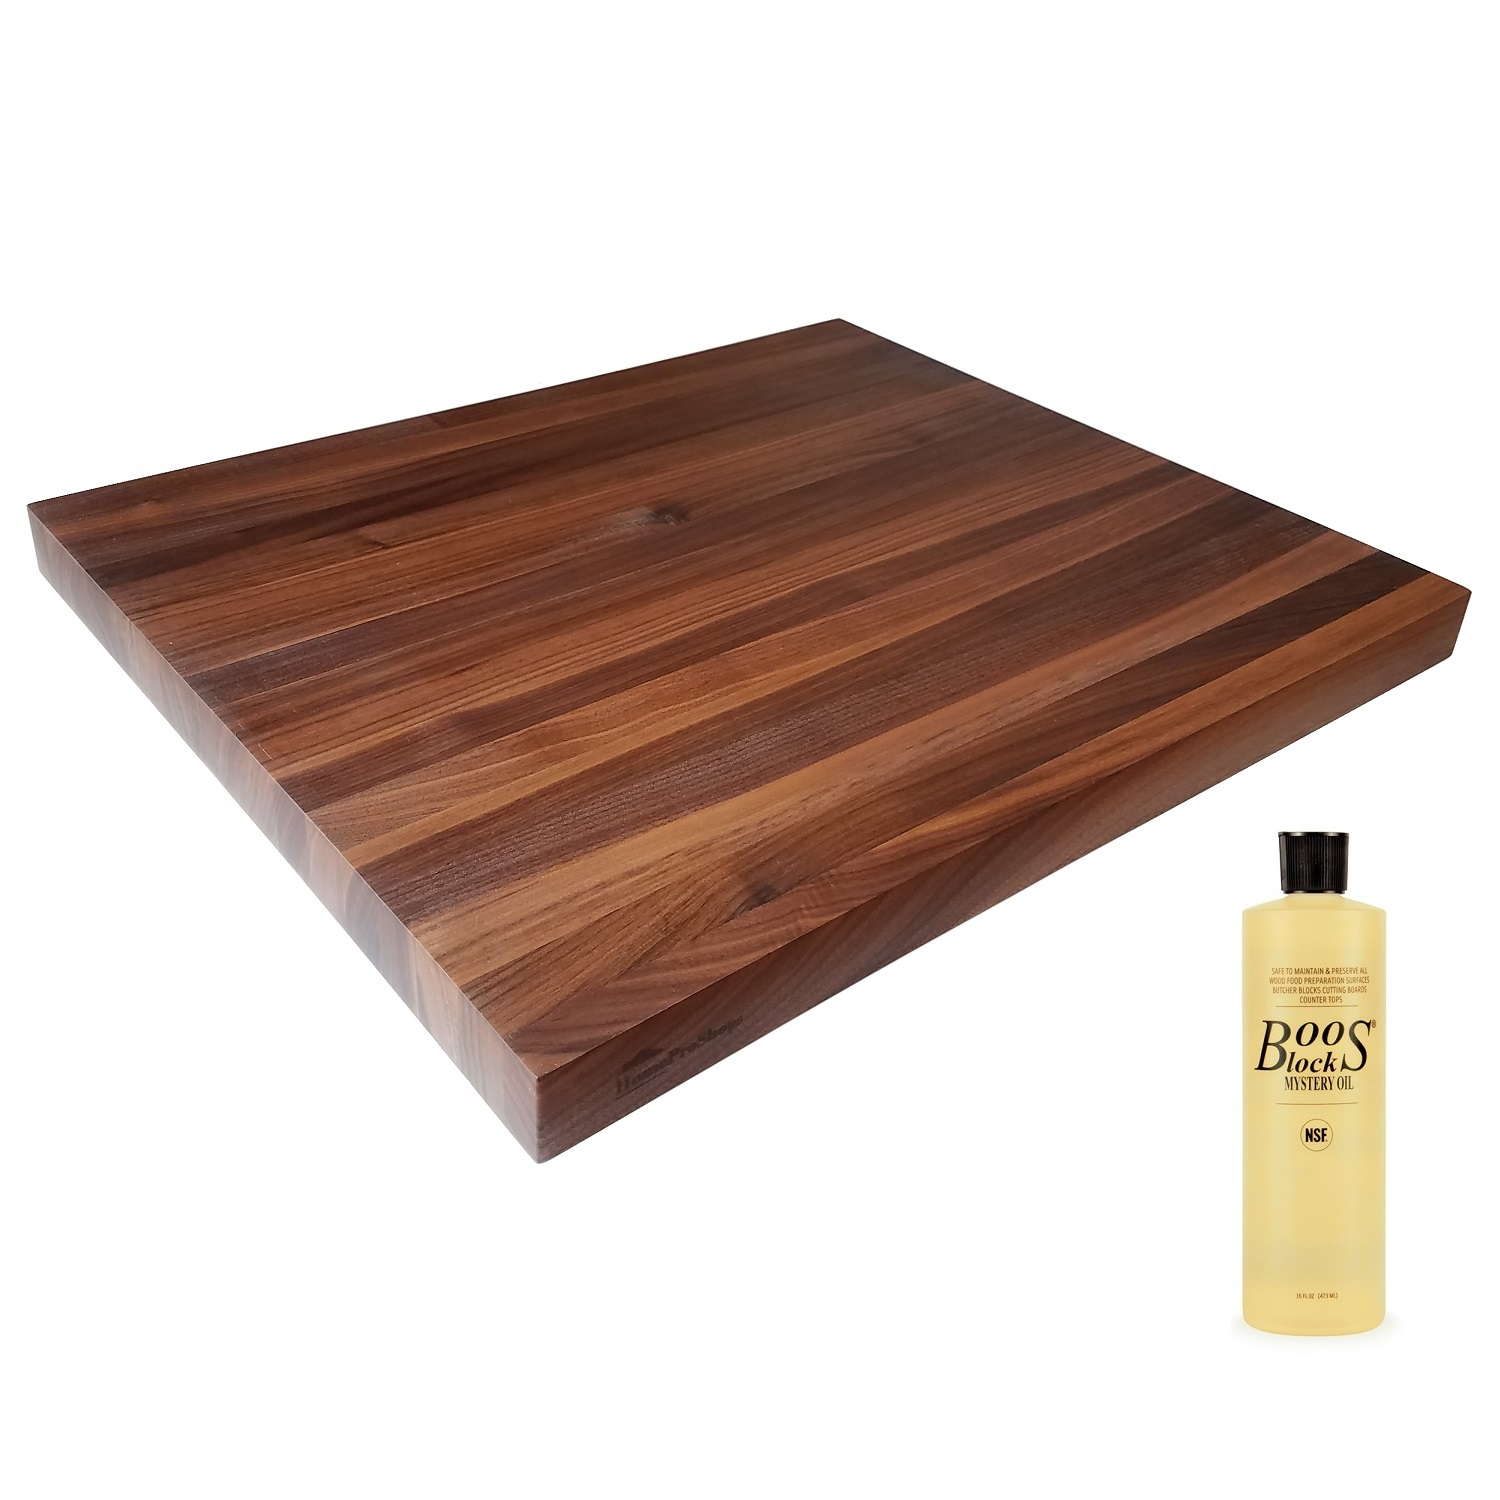 "HomeProShops Wood Butcher Block Cutting Board - 1-1/2"" x 18"" x 21"" - w John Boos MYSB Mystery Oil 16 oz Bottle Included - Solid Walnut Reversible"